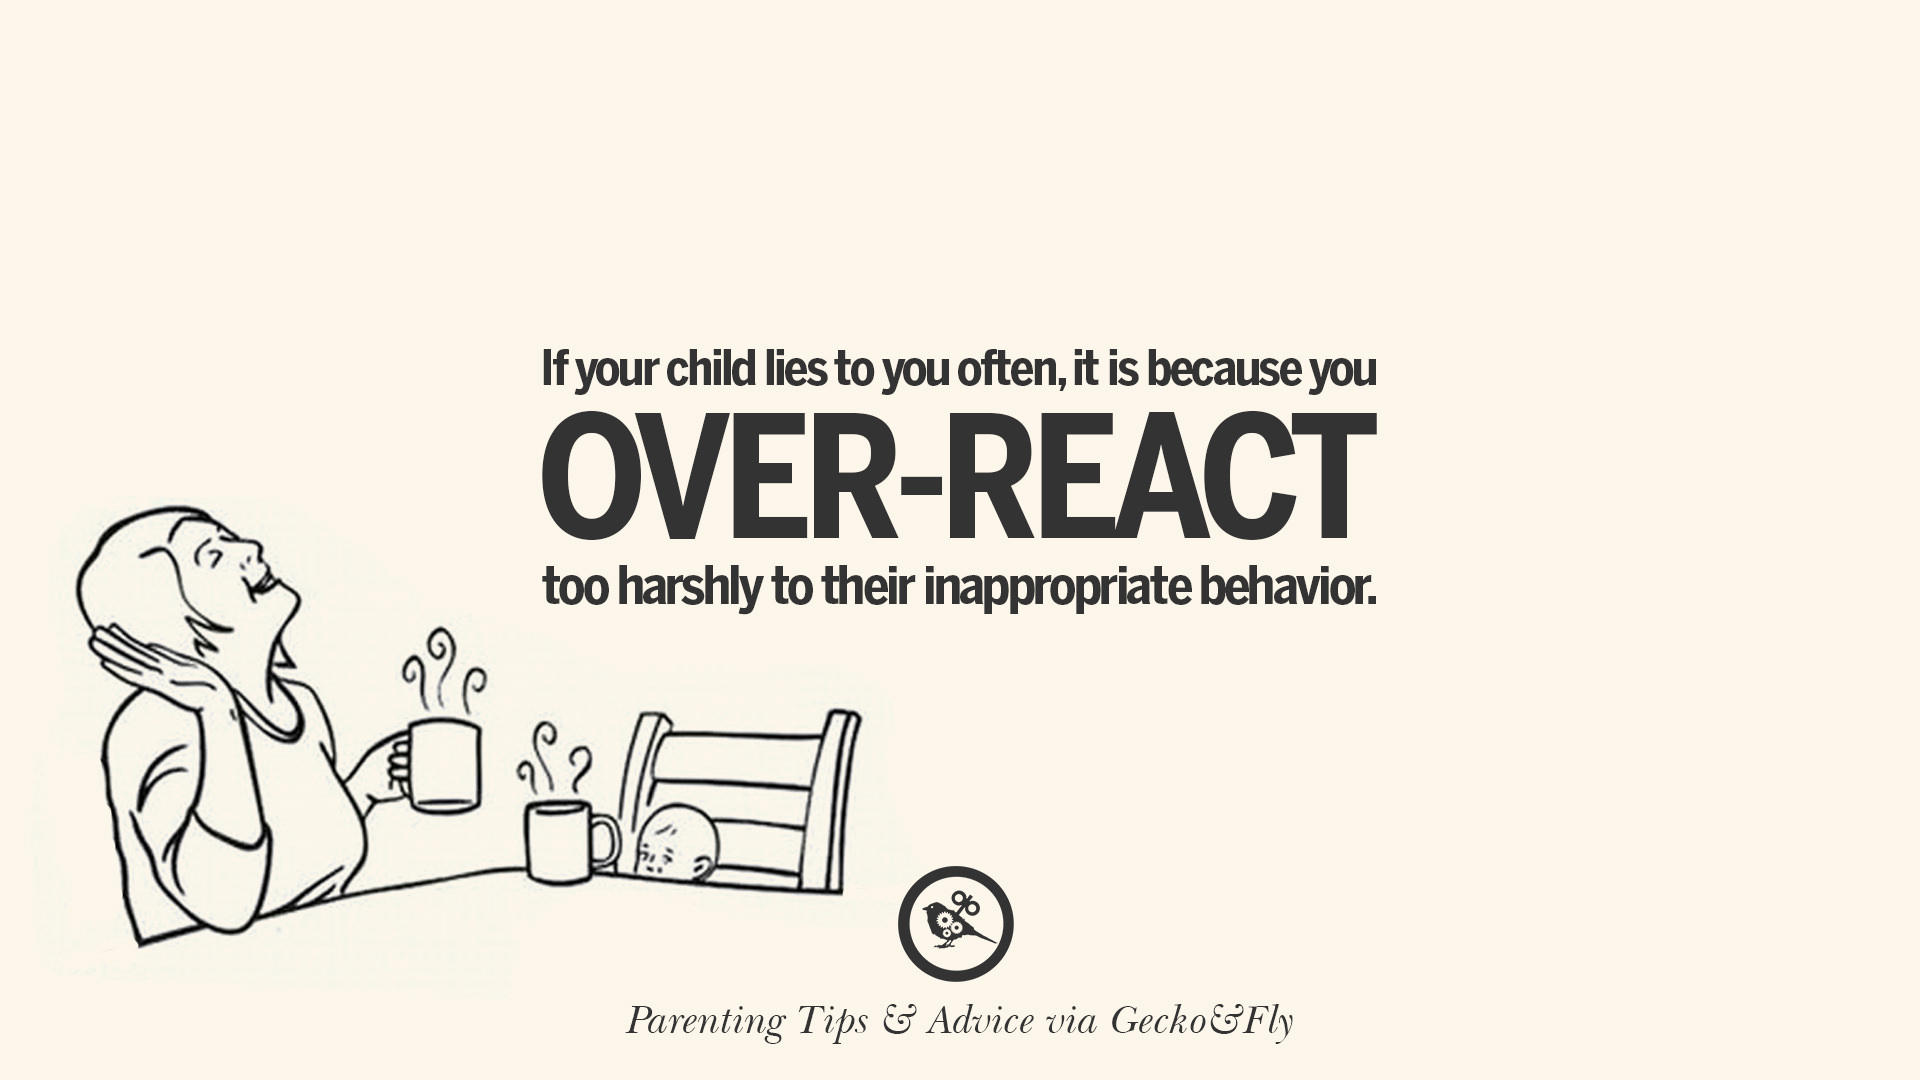 If Your Child Lies To You Often, It Is Because You Over React Too Harshly  To Their Inappropriate Behavior.